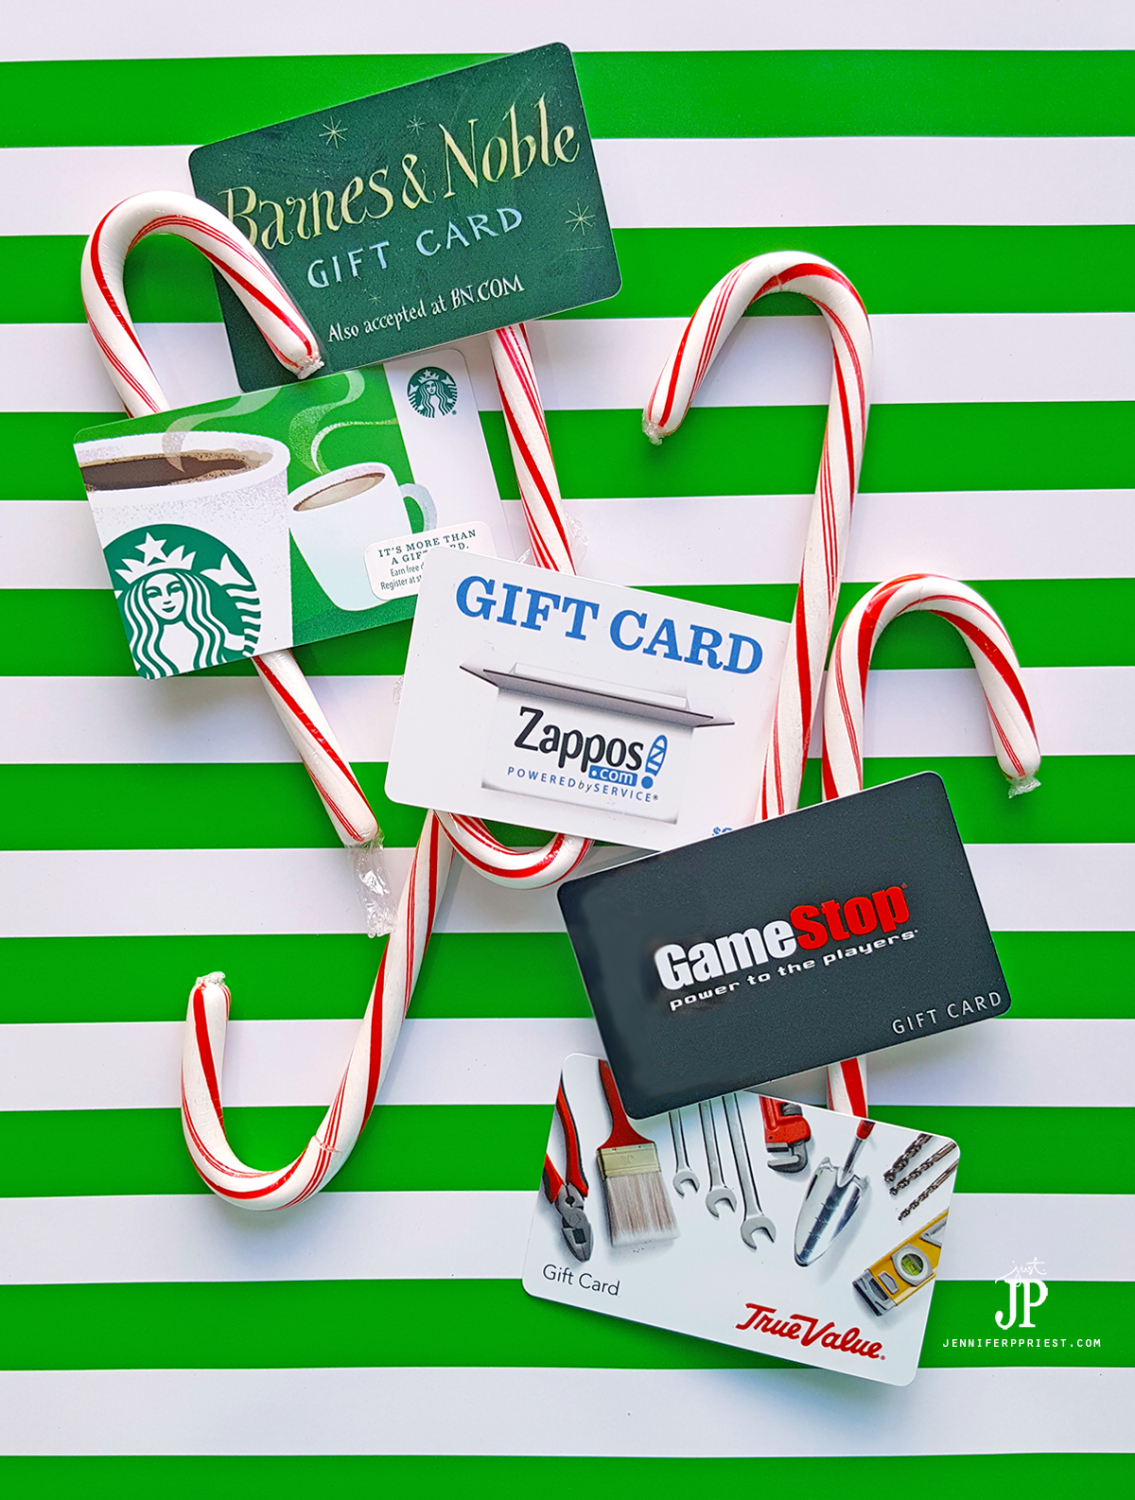 experience-gifts-instead-of-gift-cards-for-christmas-minimalist-lifestyle-jenniferppriest-2